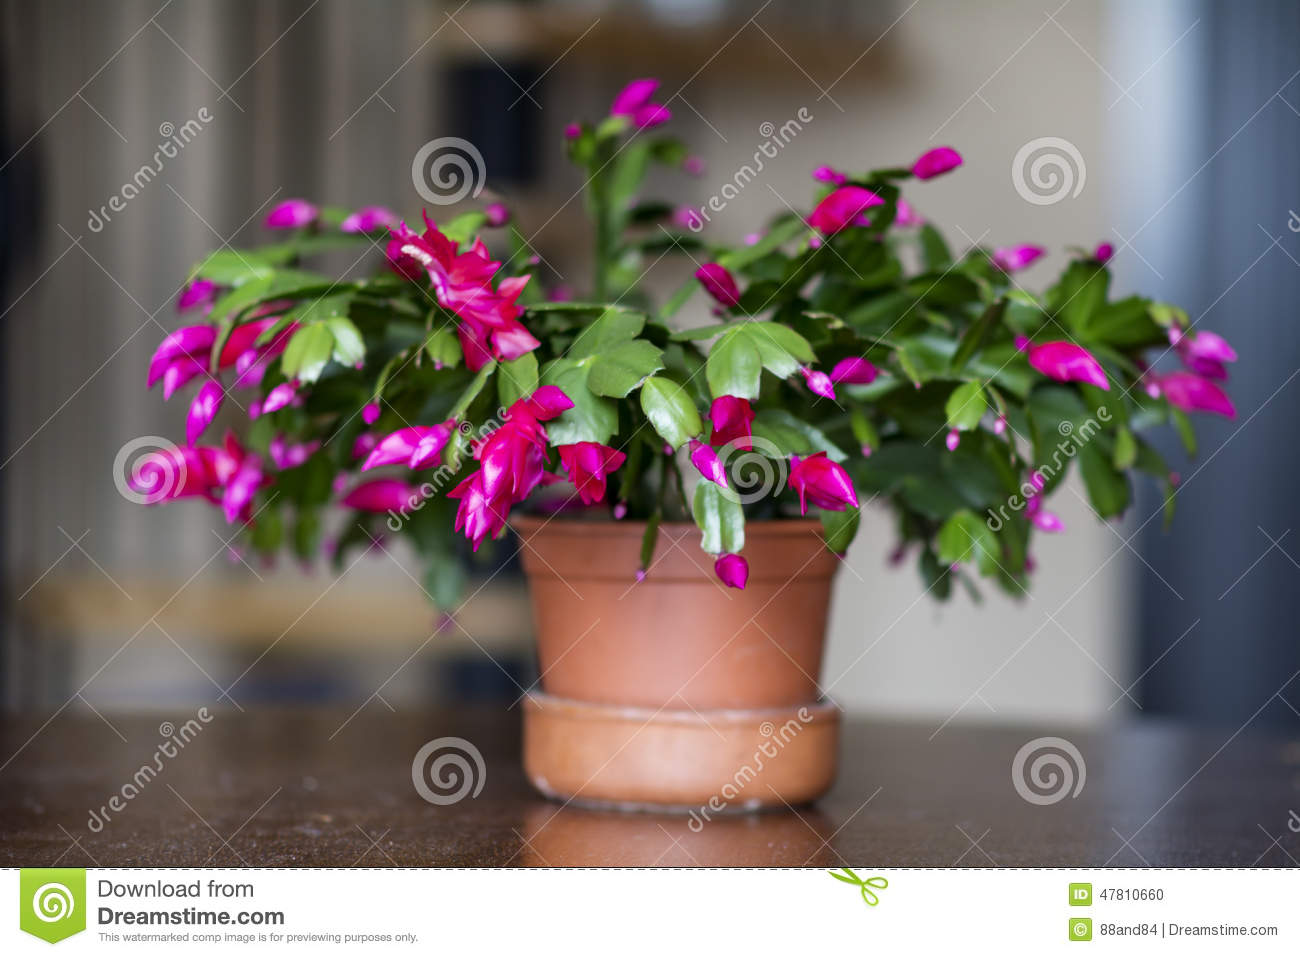 Beau cactus de no l rose dans un pot d 39 argile photo stock image 47810660 - Rose de noel en pot ...